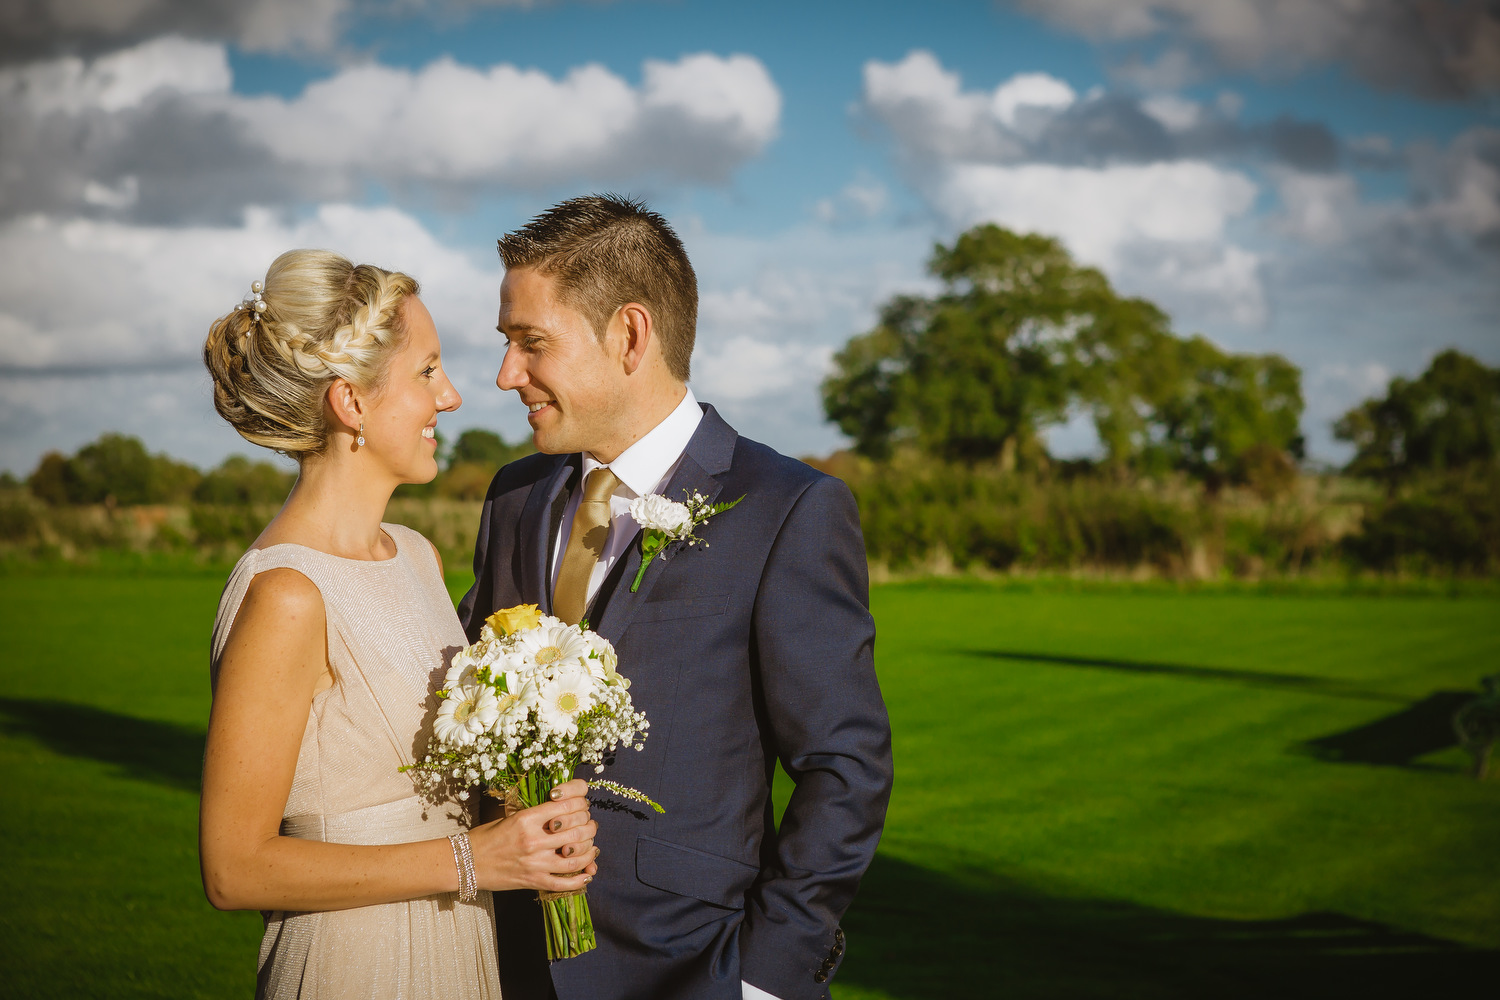 charnwood_weddings_barnsdale_lodge_rutland_dave_j78ane.JPG